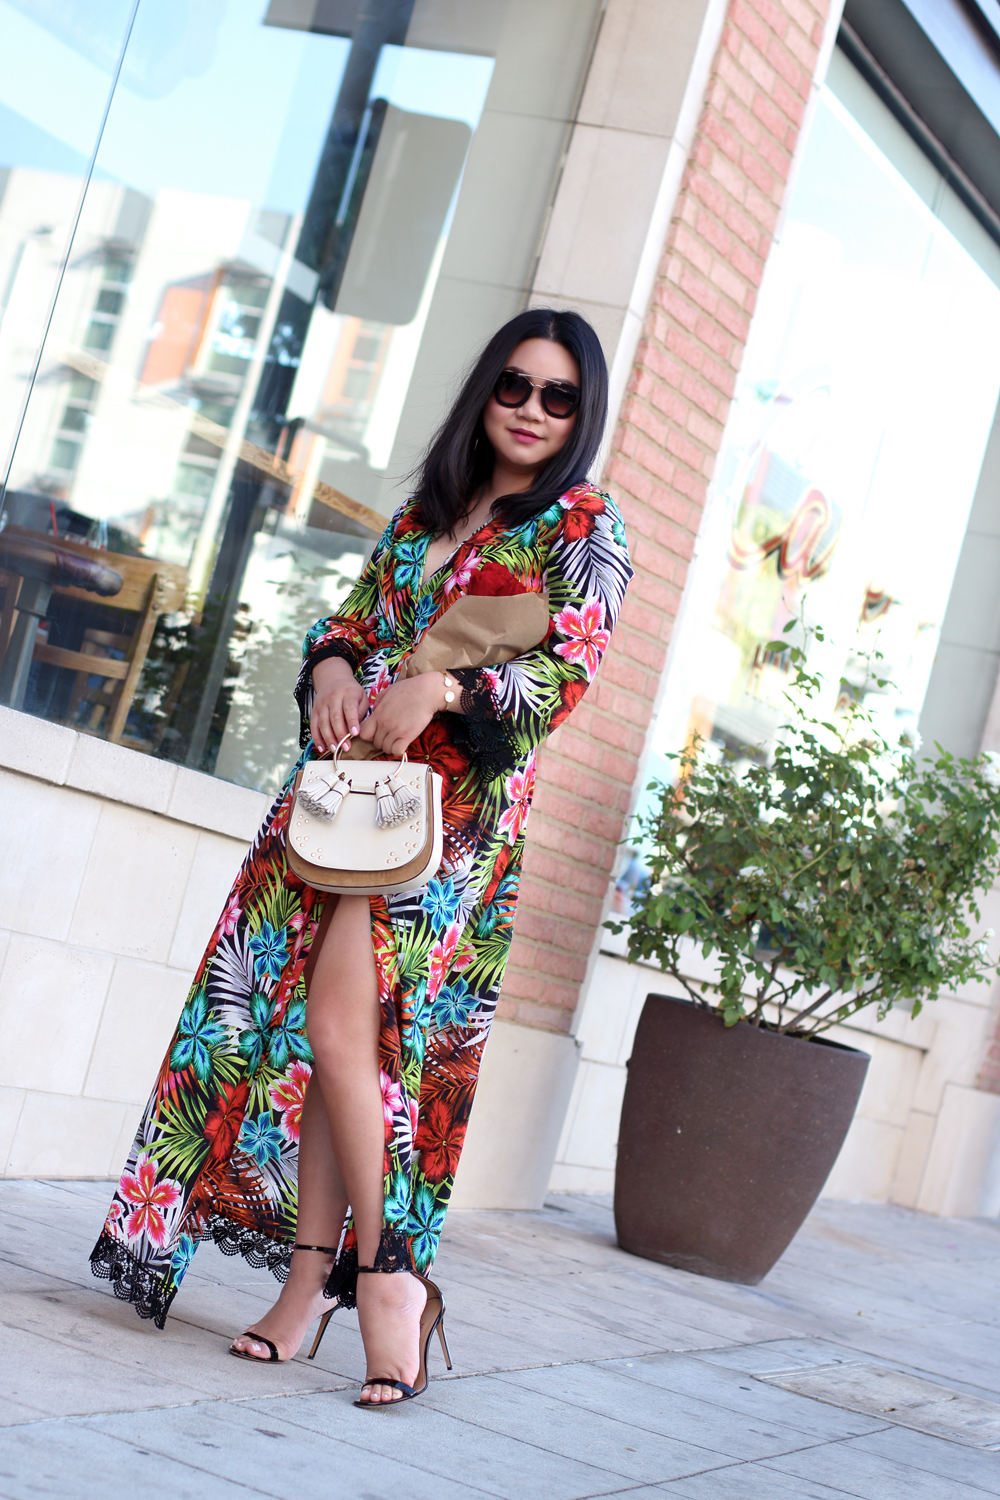 Dressy - One of my favorite ways to wear a silk kimono is a maxi dress! I love how effortlessly dressy it looks, and all I had to do was tie a bow and throw on some heels. So easy Peasy.